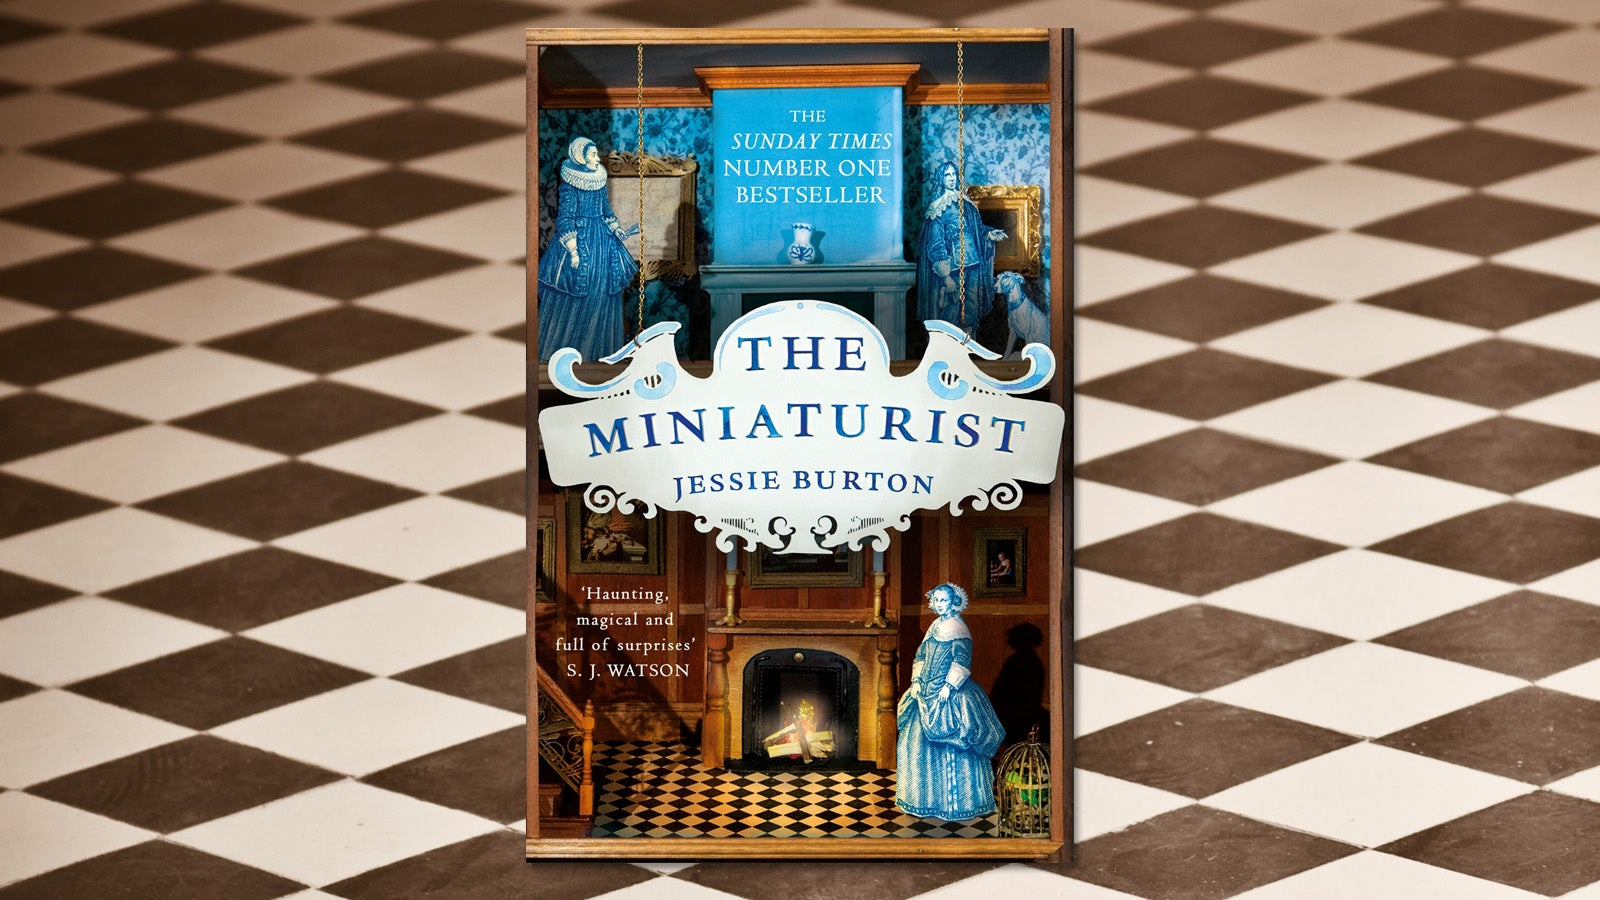 The book cover for The Miniaturist against a tiled floor background